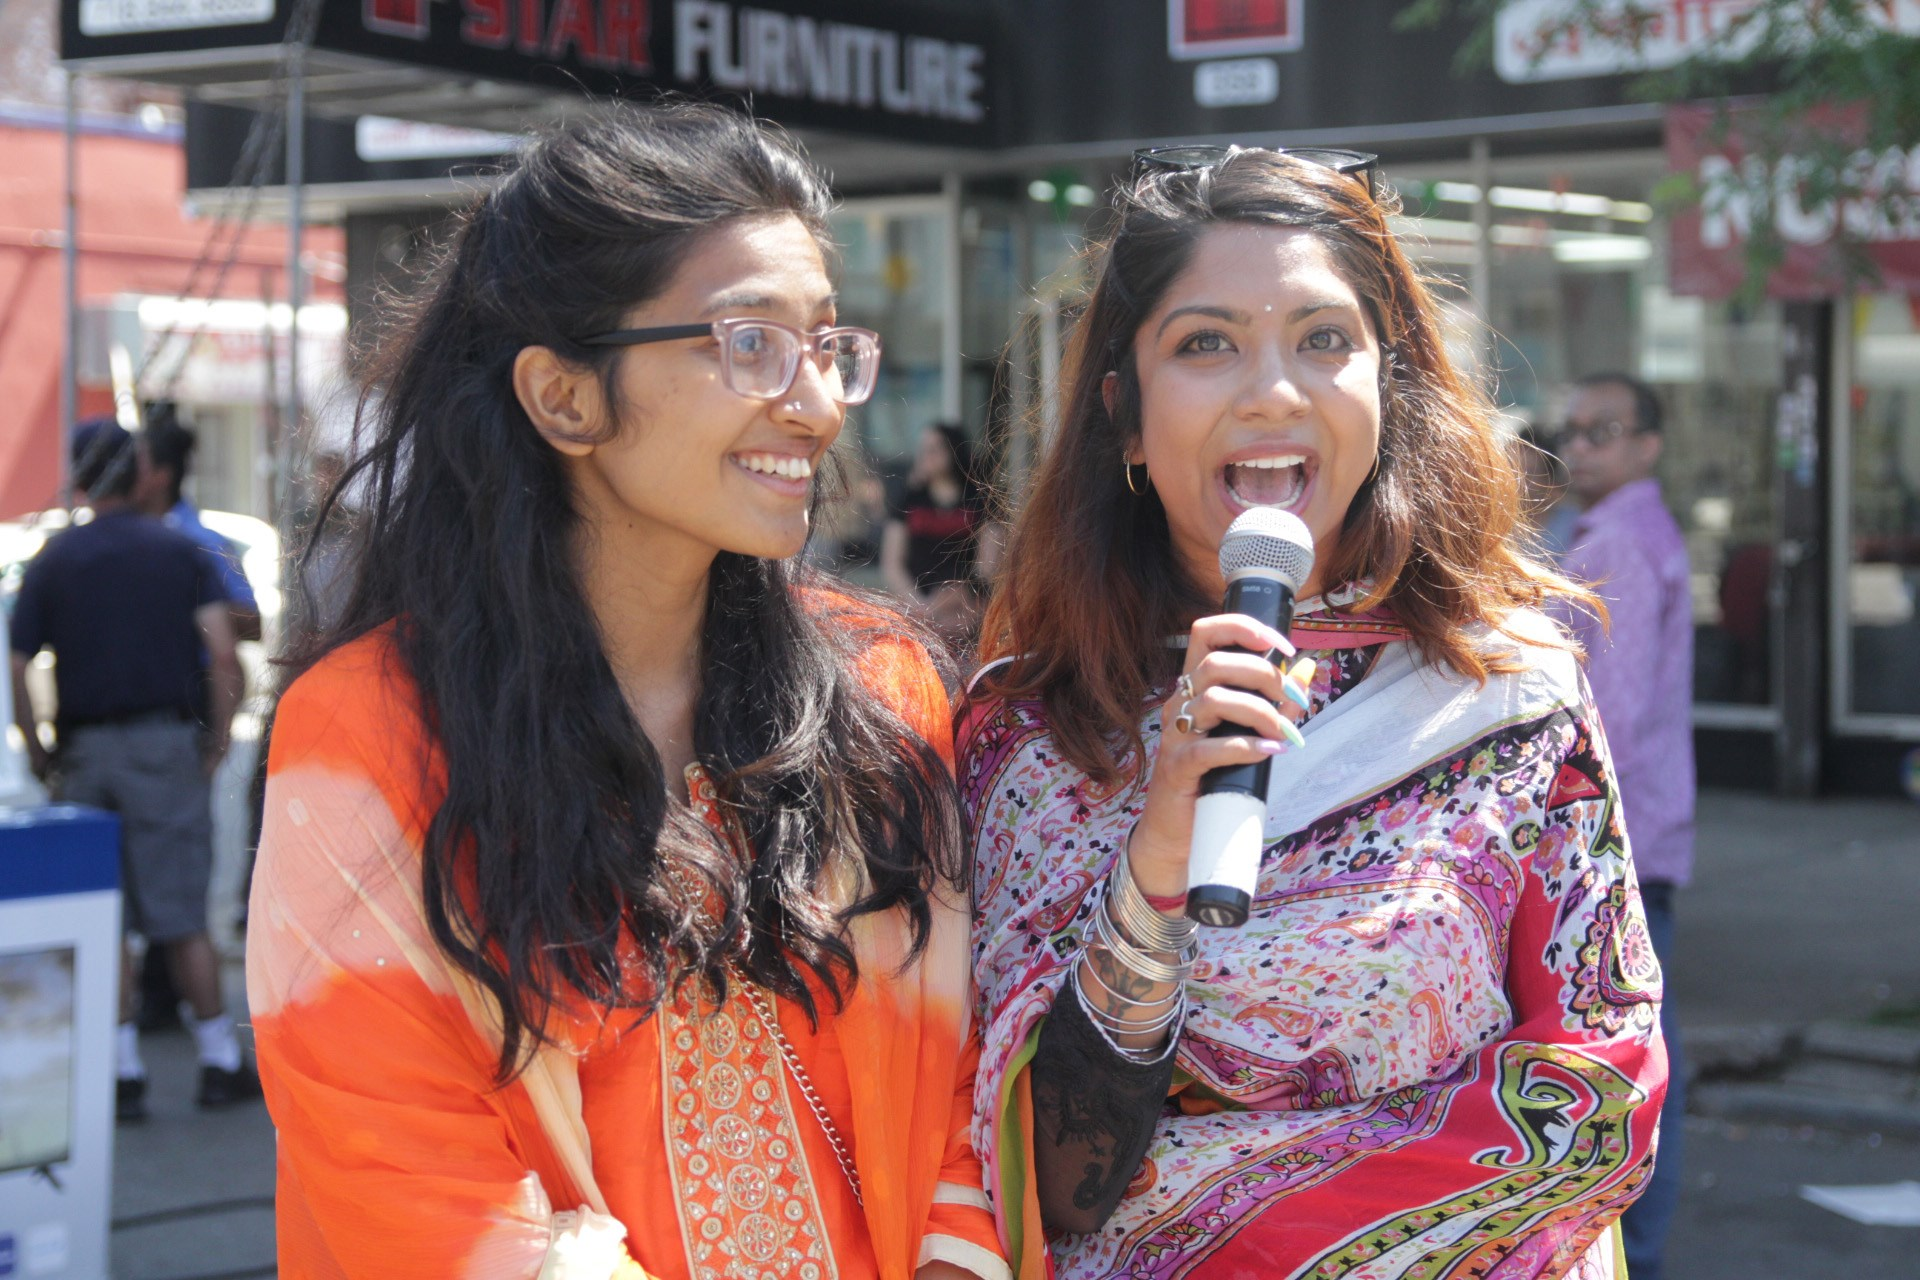 A Bengali Women's Empowerment Group Walks A Tightrope in